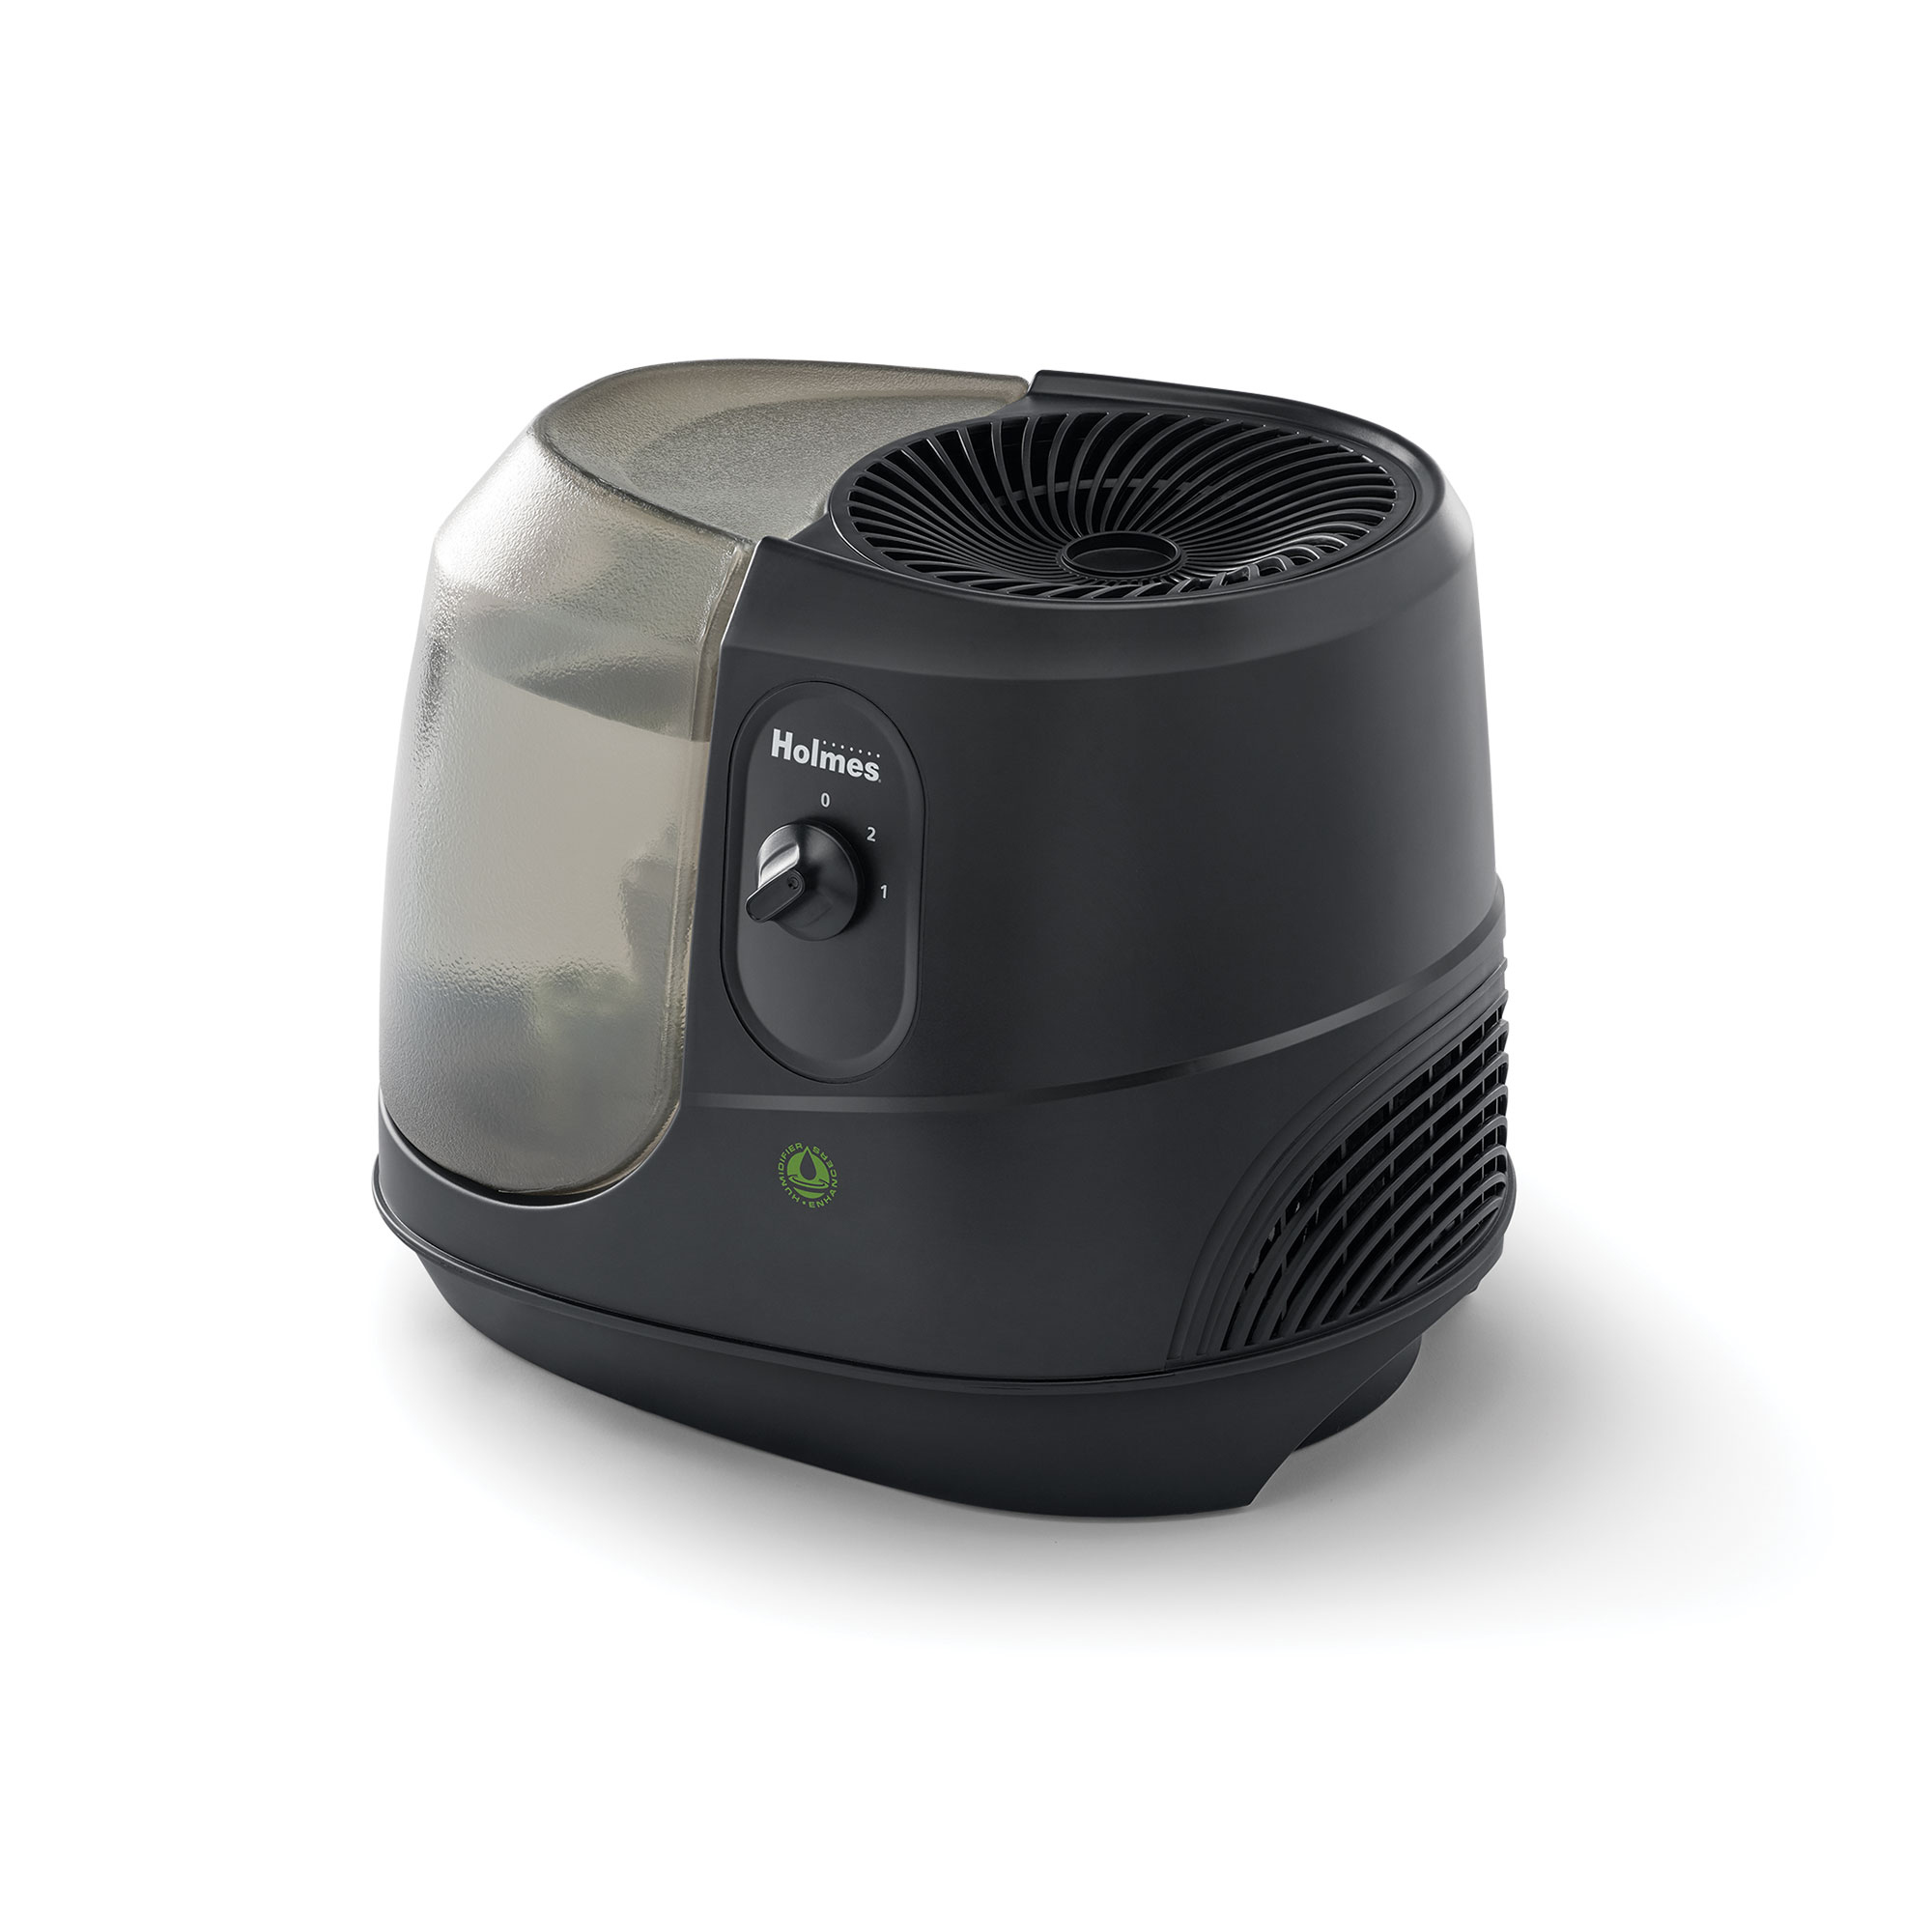 Holmes Cool Mist Humidifier Small Room 1 Gallon Black